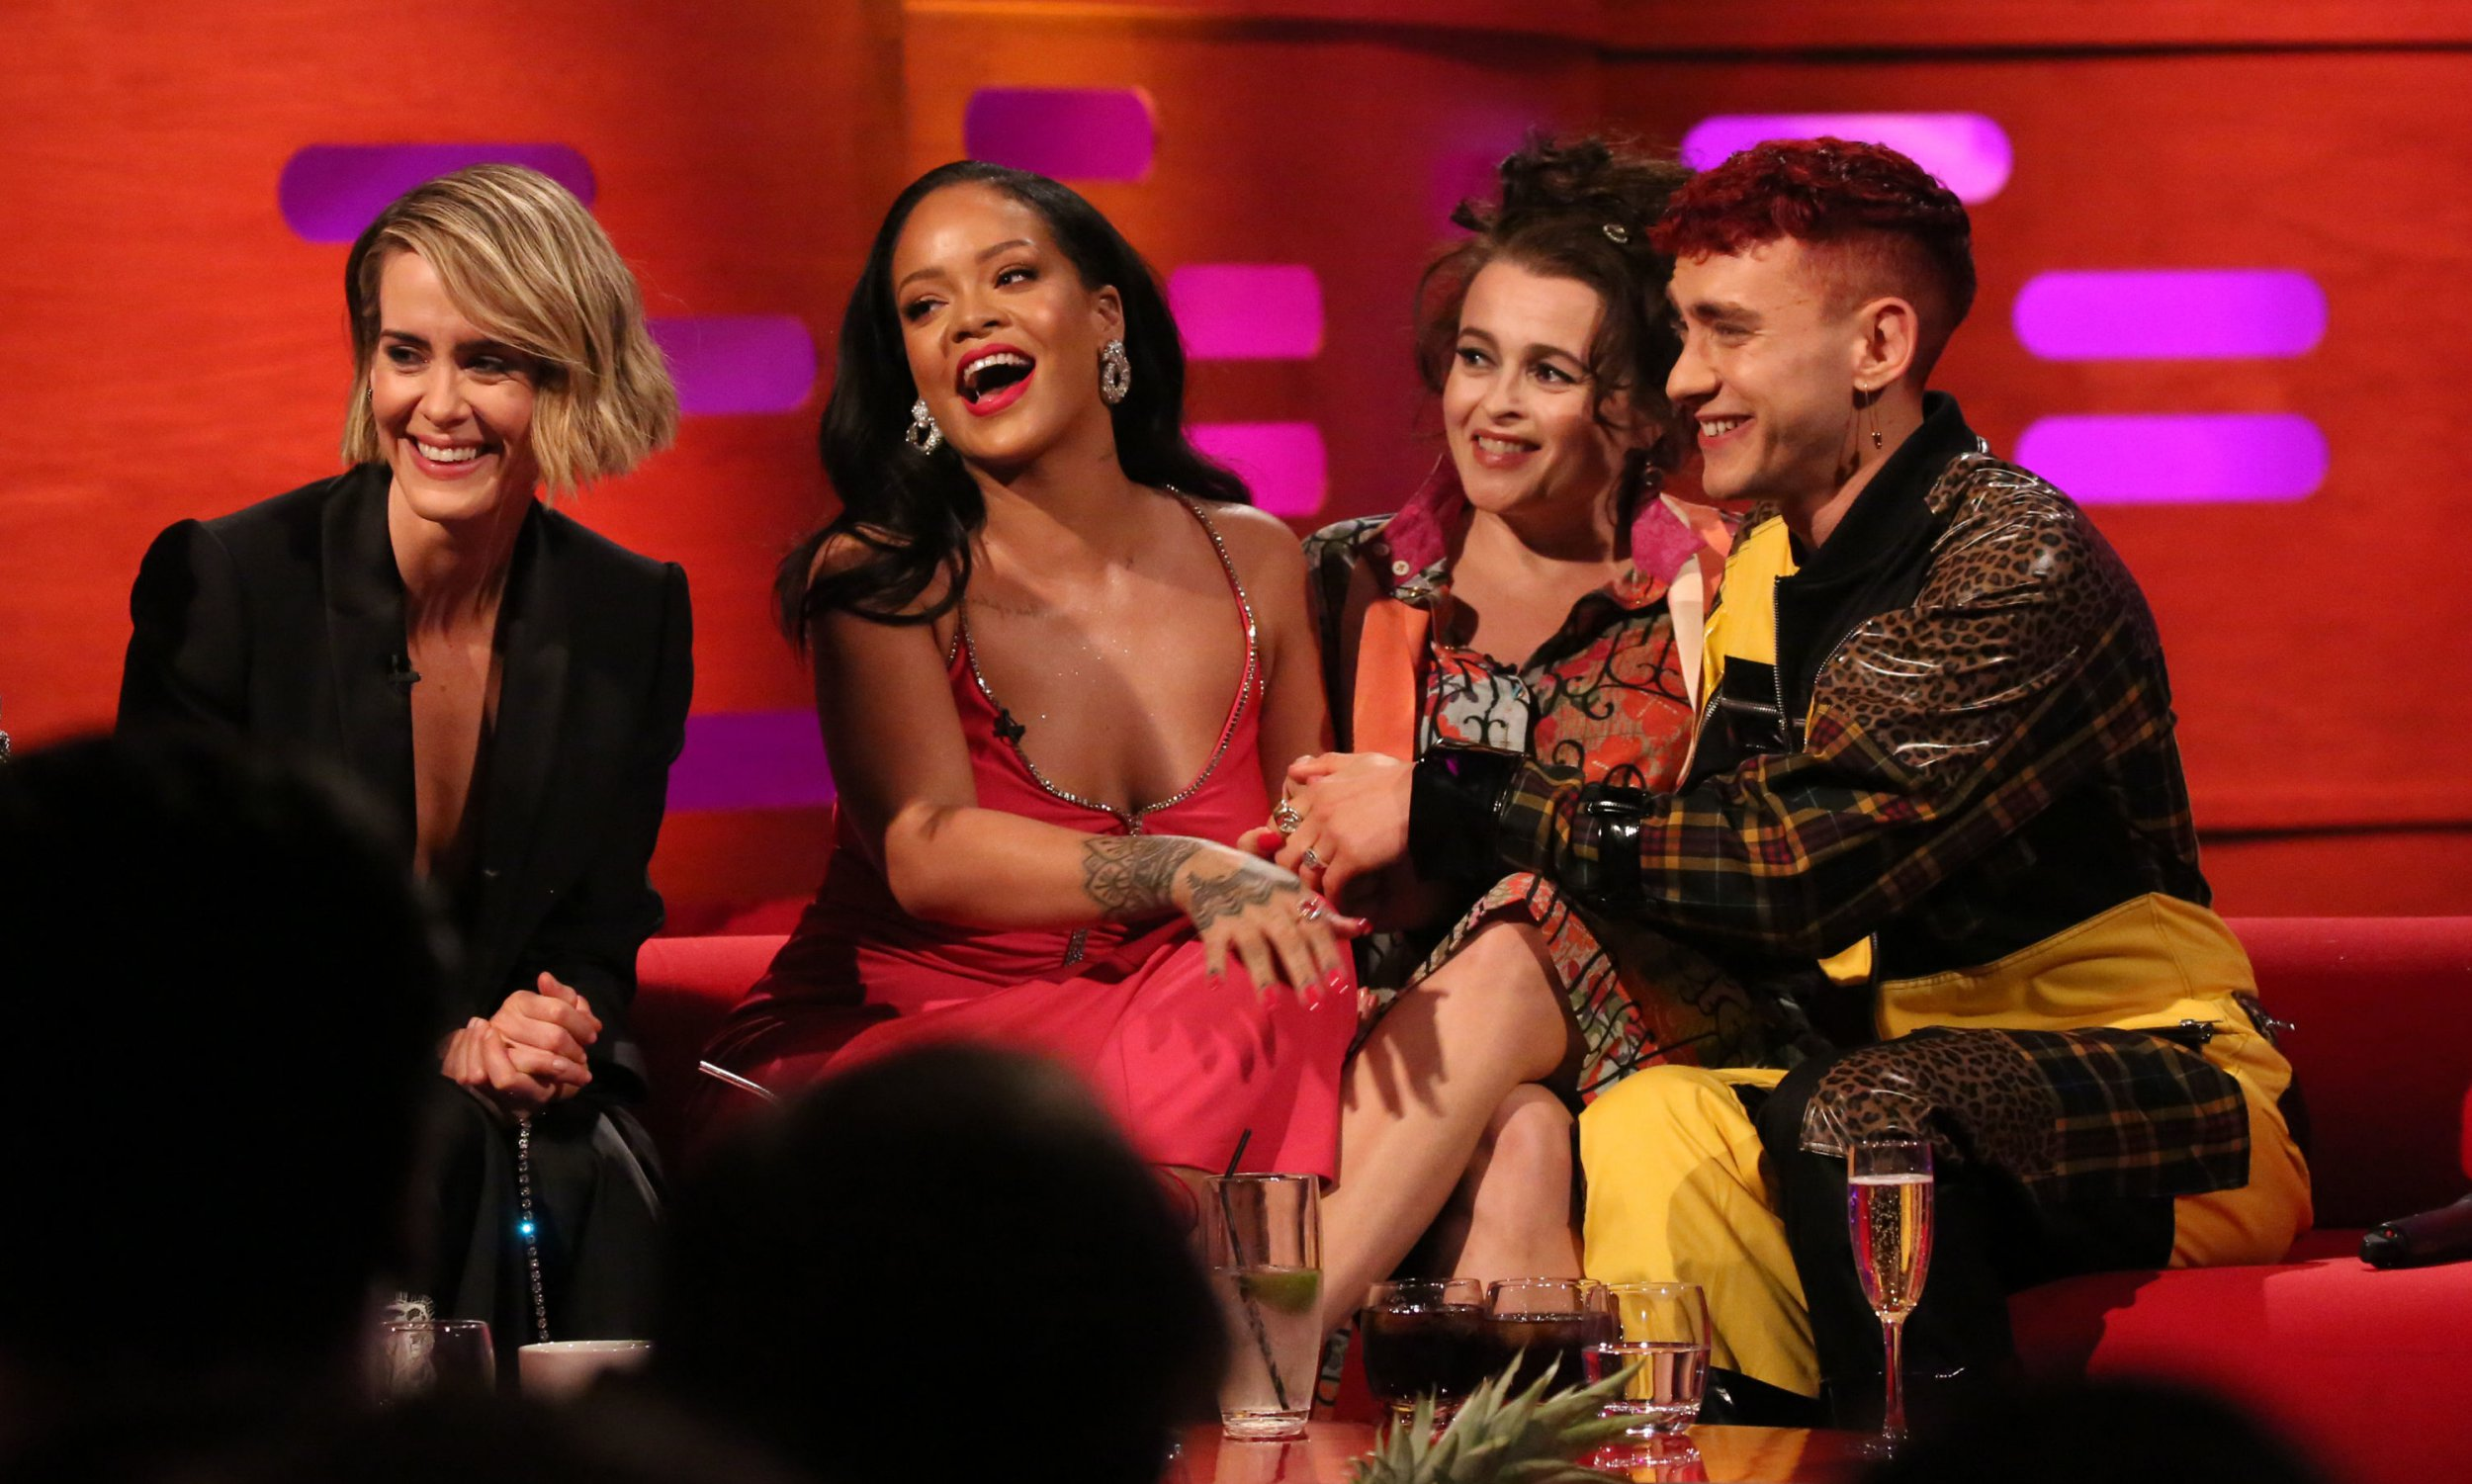 Olly Alexander fangirls over Rihanna on Graham Norton: 'You're such an inspiration to me'